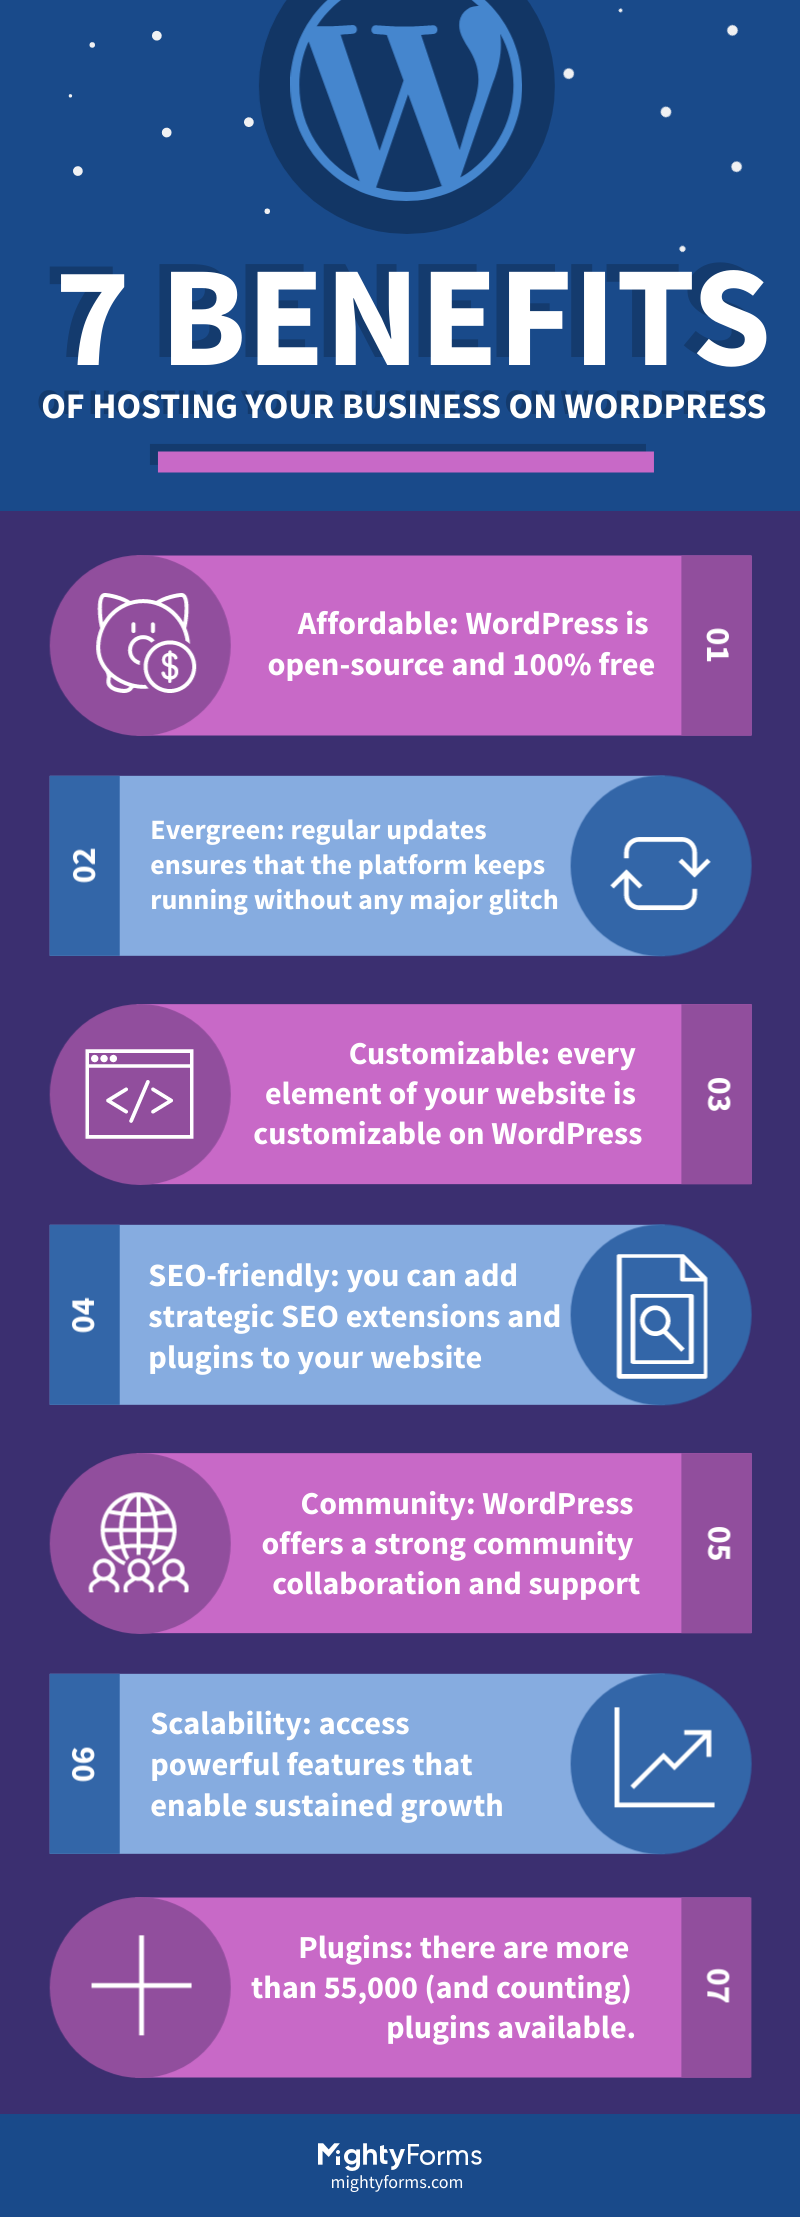 benefits of hosting a site on wordpress infographic_MightyForms